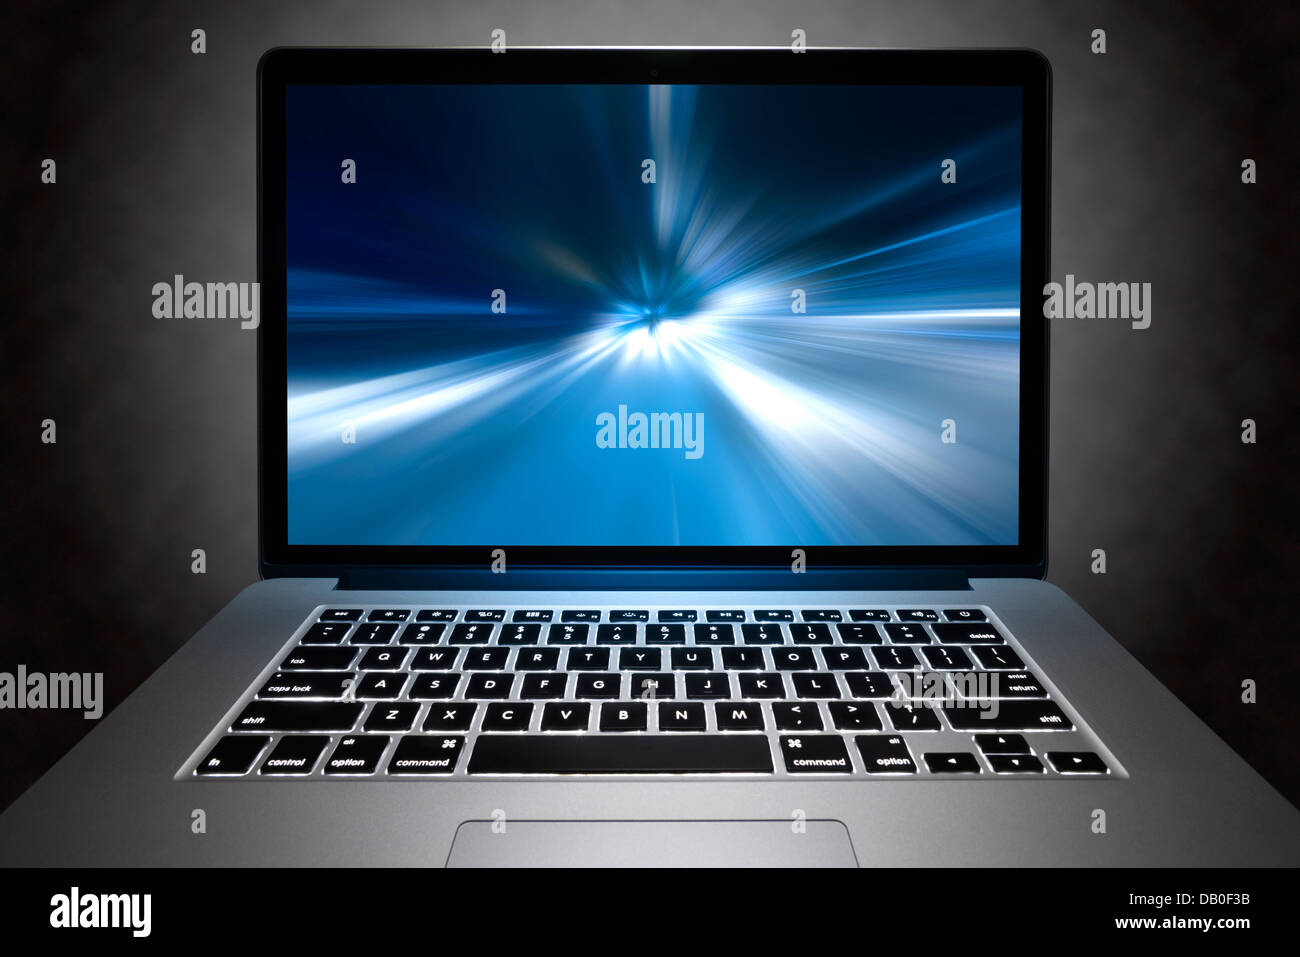 Front view of a Macbook Pro with Retina display with high-speed visual effect on its screen. - Stock Image